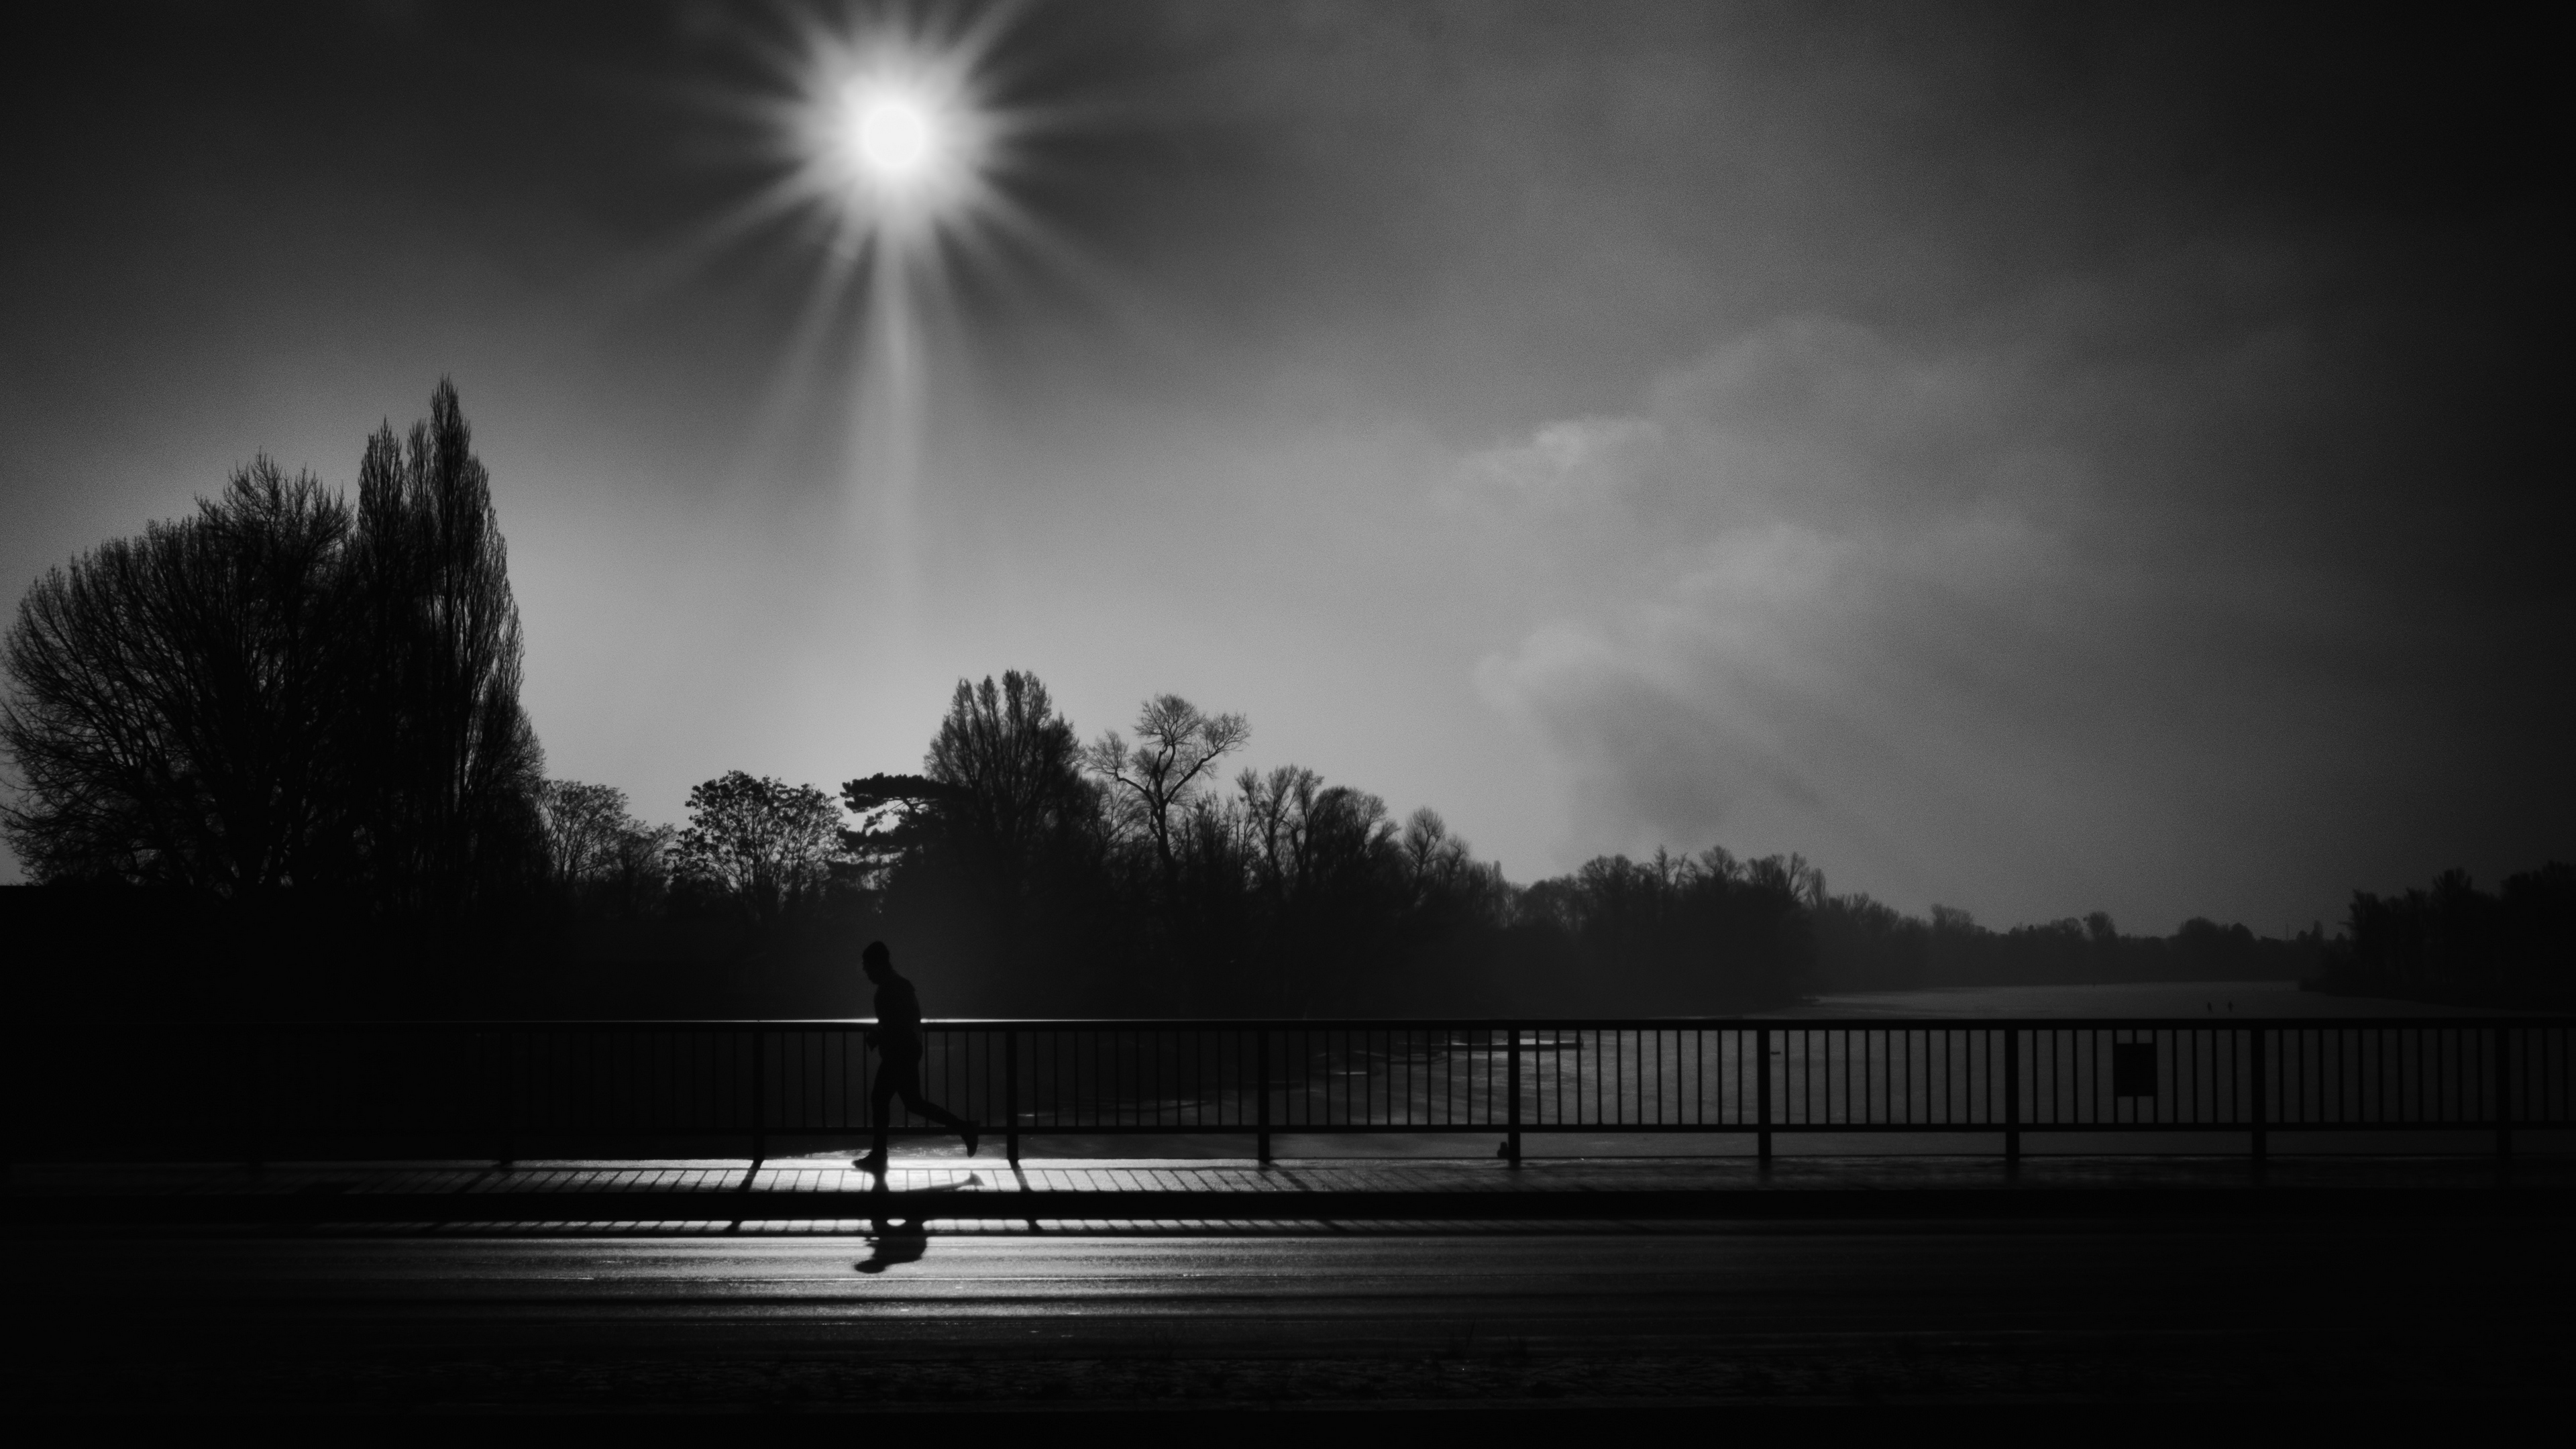 silhouette running bridge bw sunlight 4k 1540575944 - silhouette, running, bridge, bw, sunlight 4k - Silhouette, Running, bridge